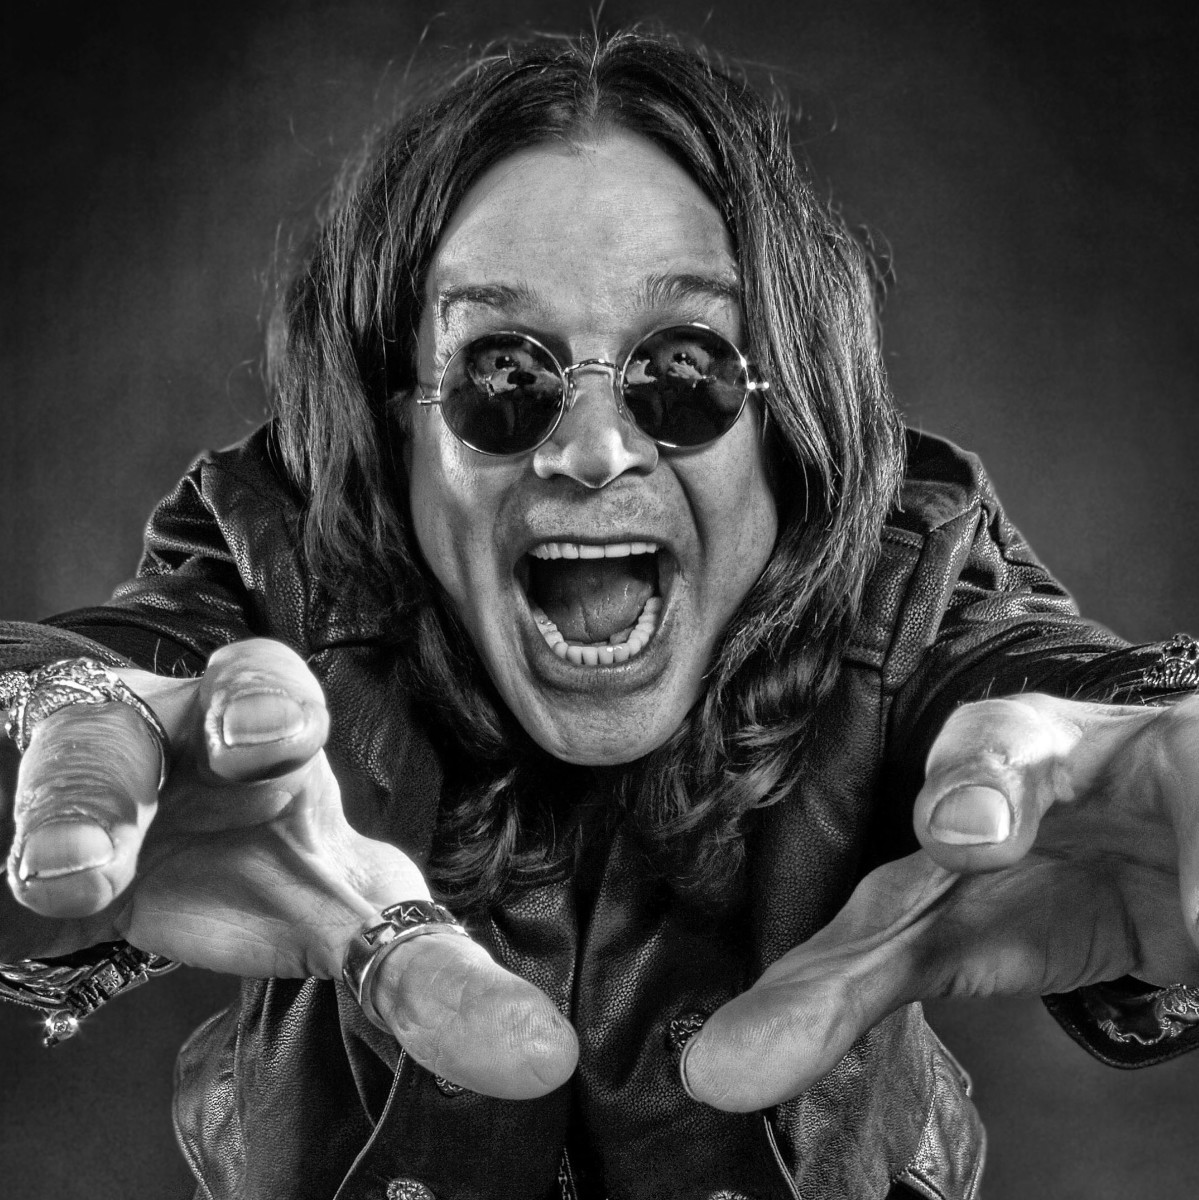 Ozzy Osbourne - Age, Songs & Family - Biography